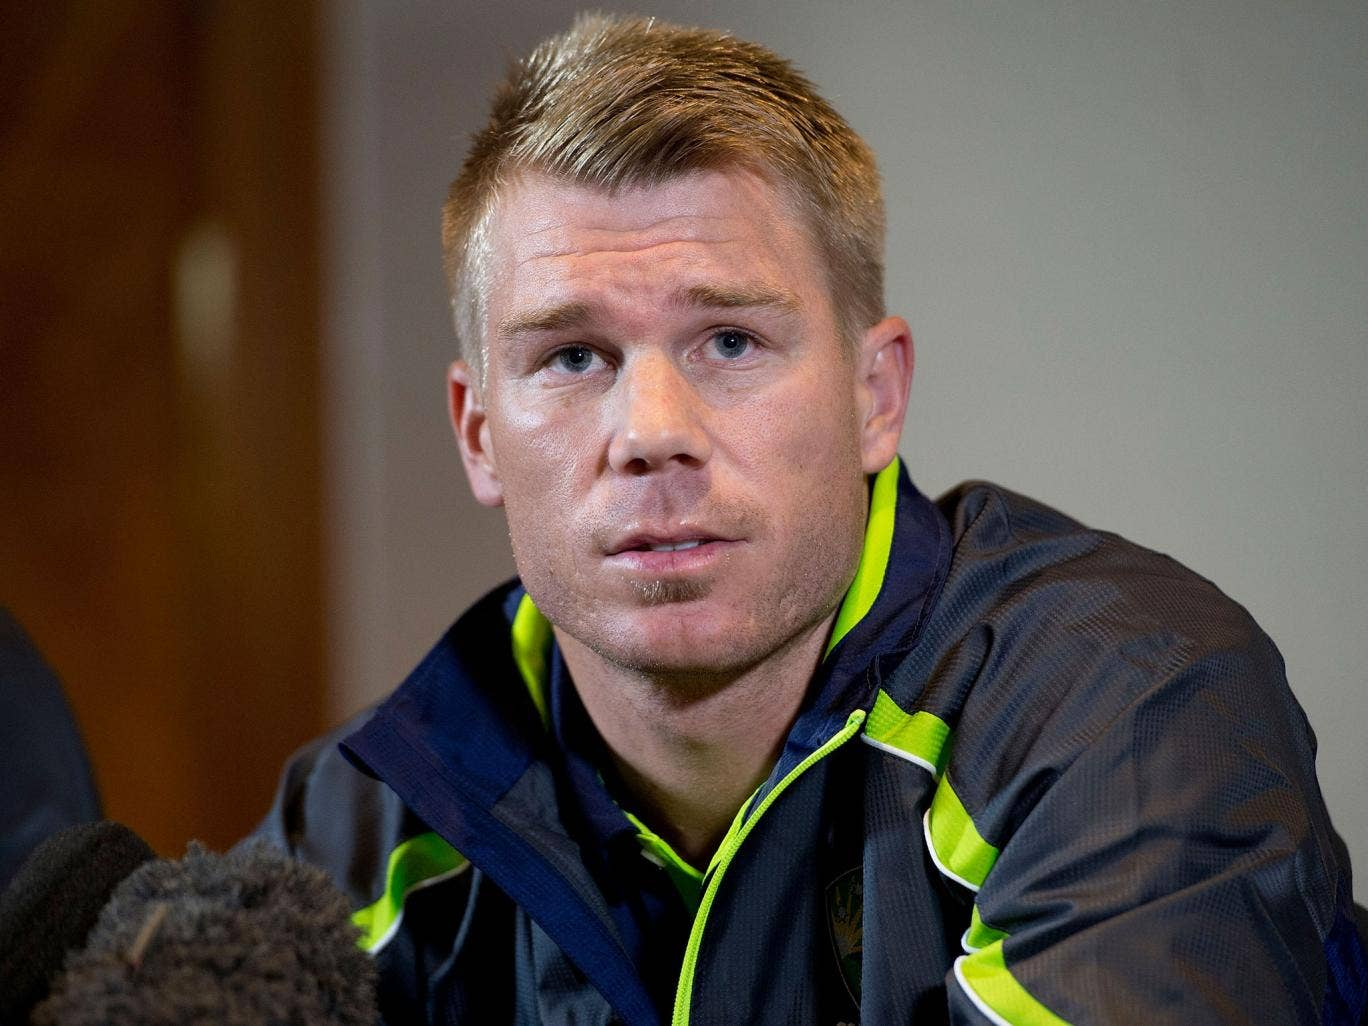 David Warner was fined A$11,500 for the Walkabout altercation